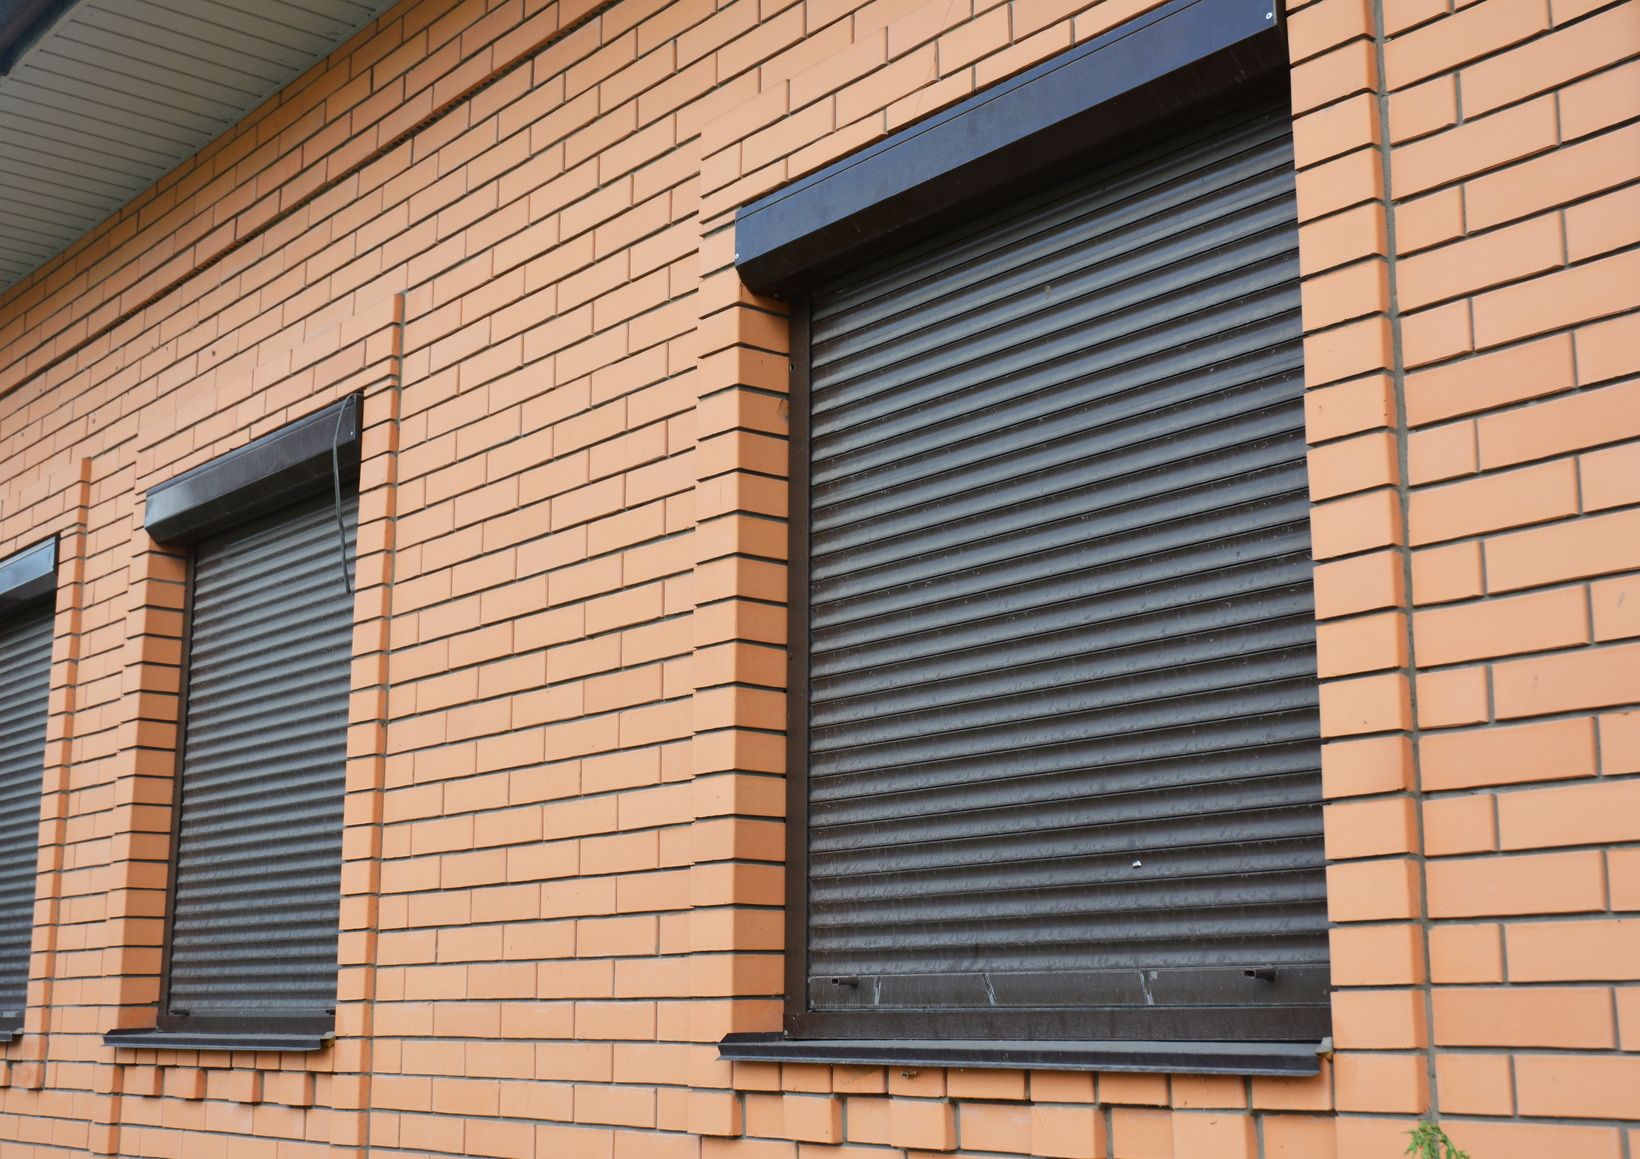 Brick House Windows with rolling shutter for house protection.